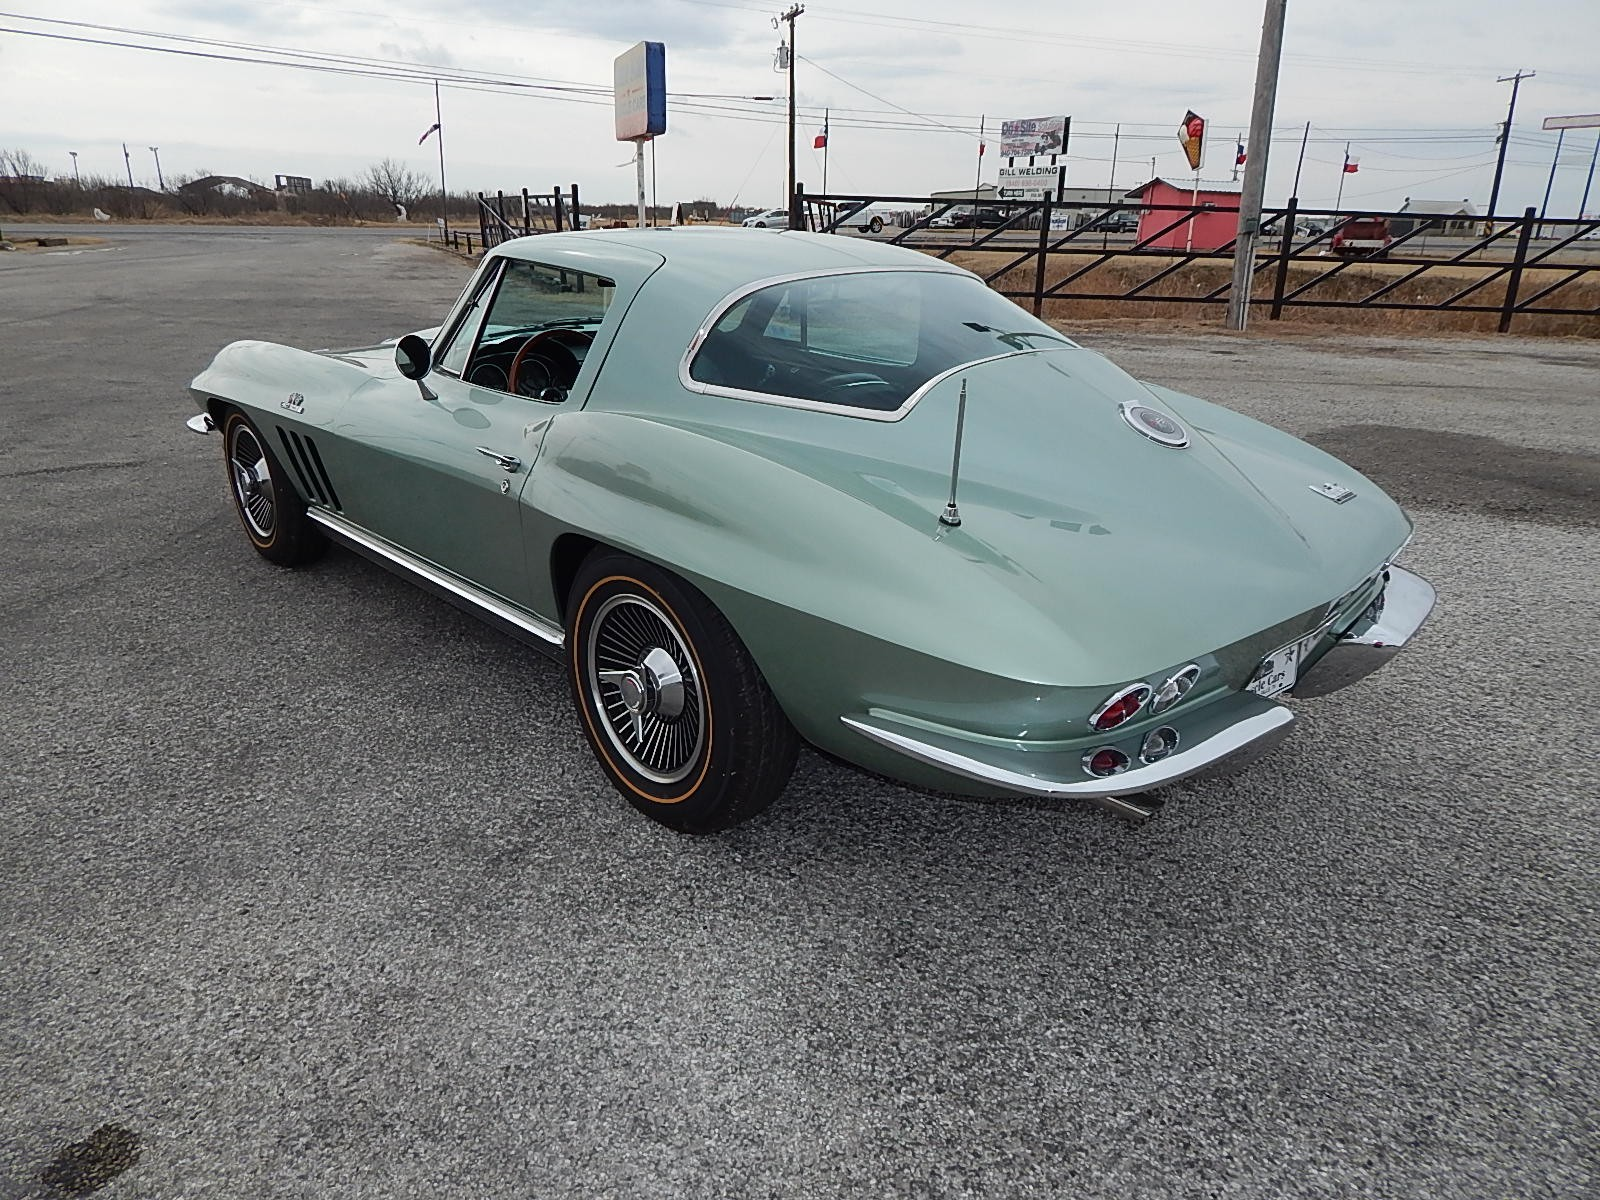 1966 Chevrolet Corvette Stingray For Sale At Vicari Auctions Nocona Chevy 3rd Image Of A